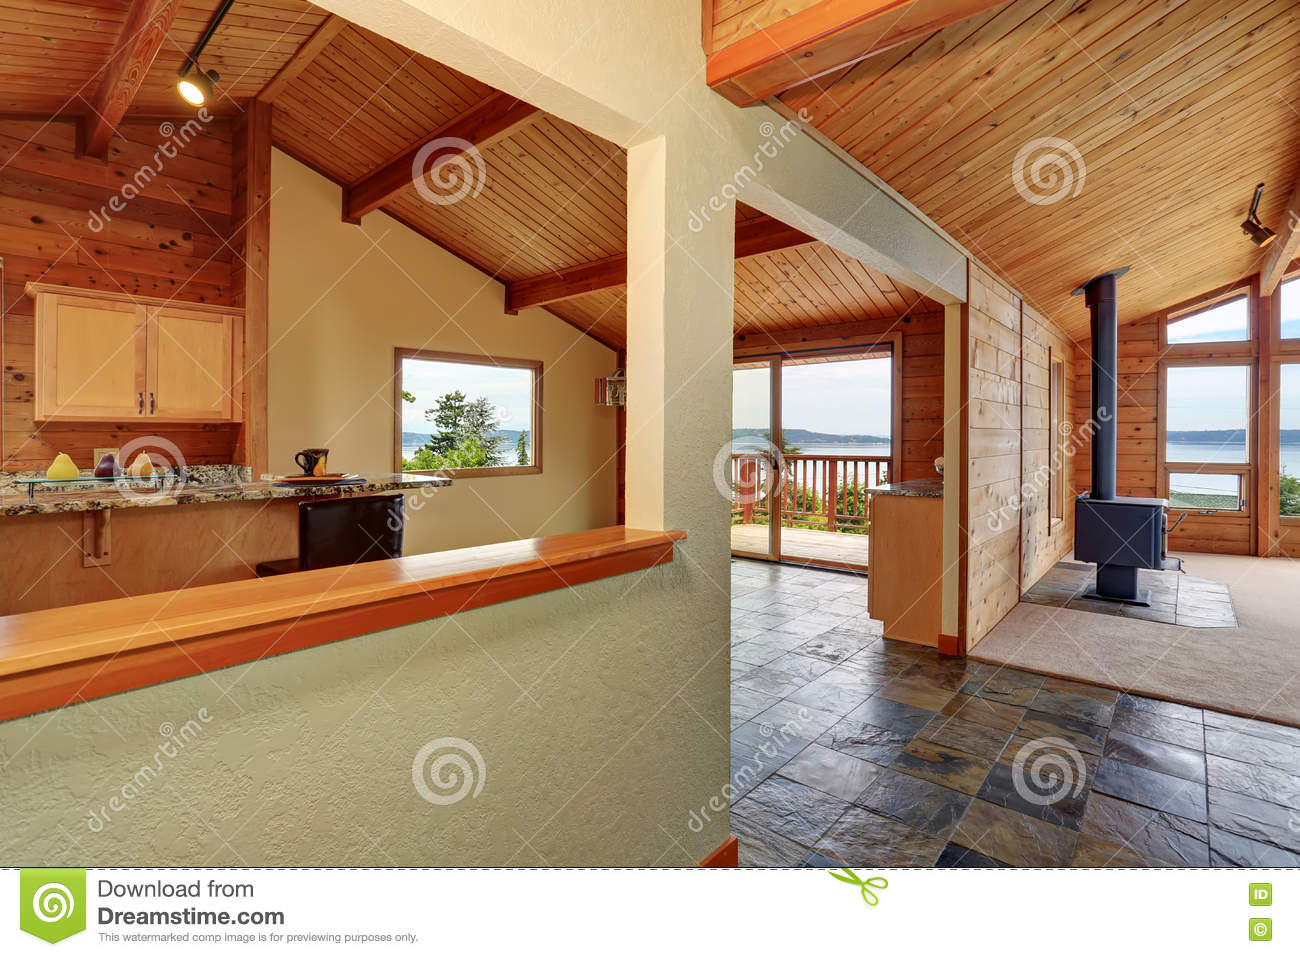 Download Wooden Trim Home With Open Floor Plan. Kitchen With Granite Counter Top. Stock Photo - Image of clean, refrigerator: 77304094